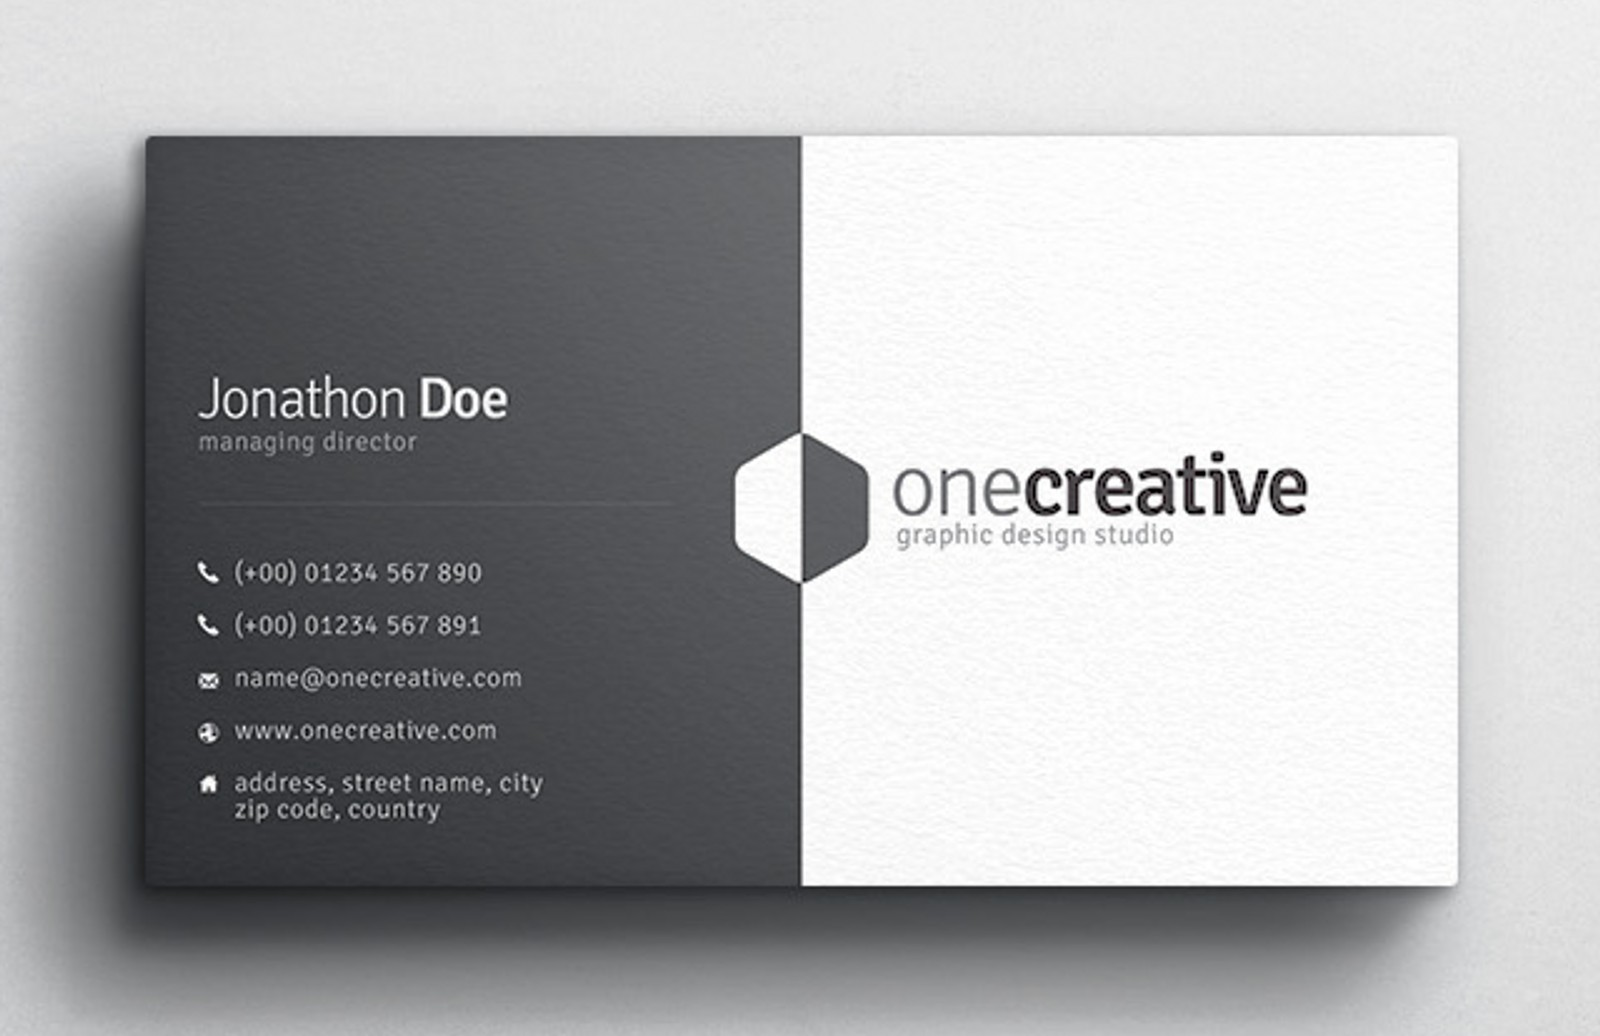 Duo business card design medialoot duo business card design fbccfo Images